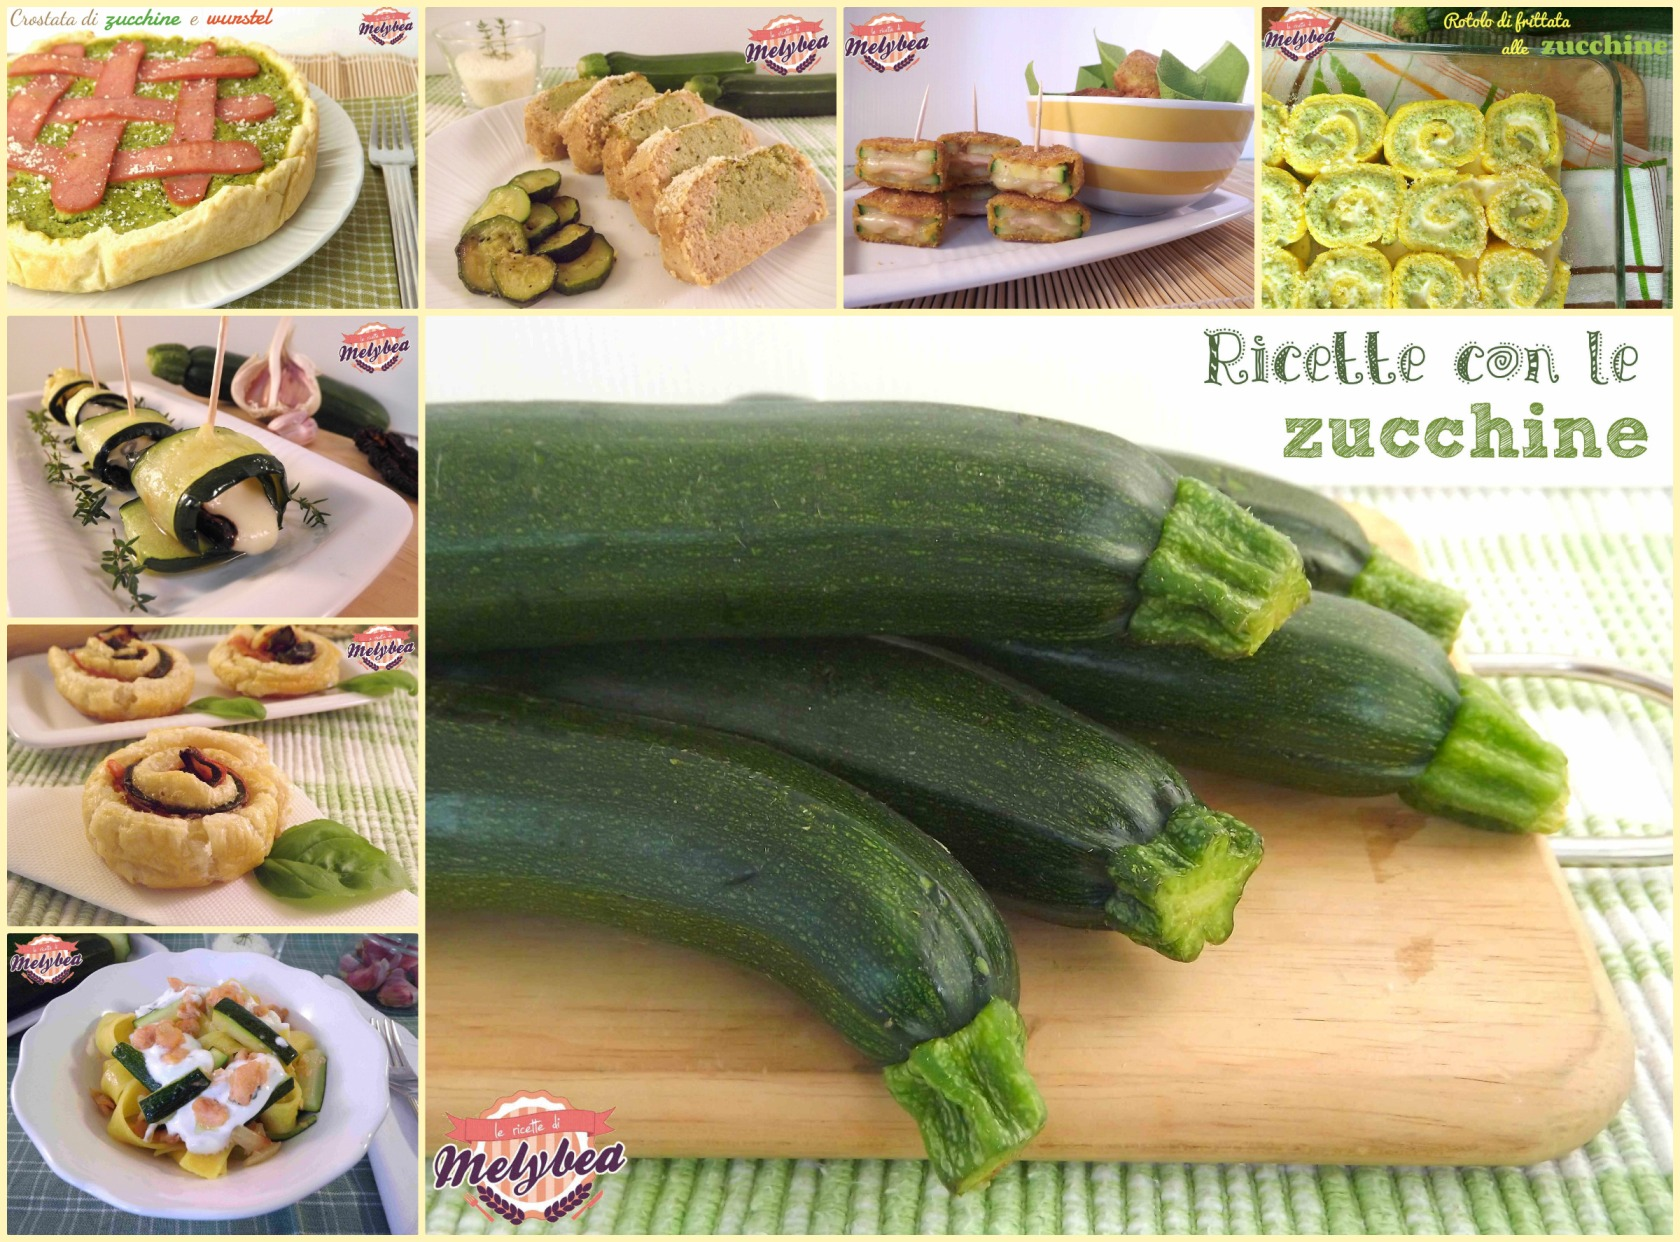 Ricette con le zucchine